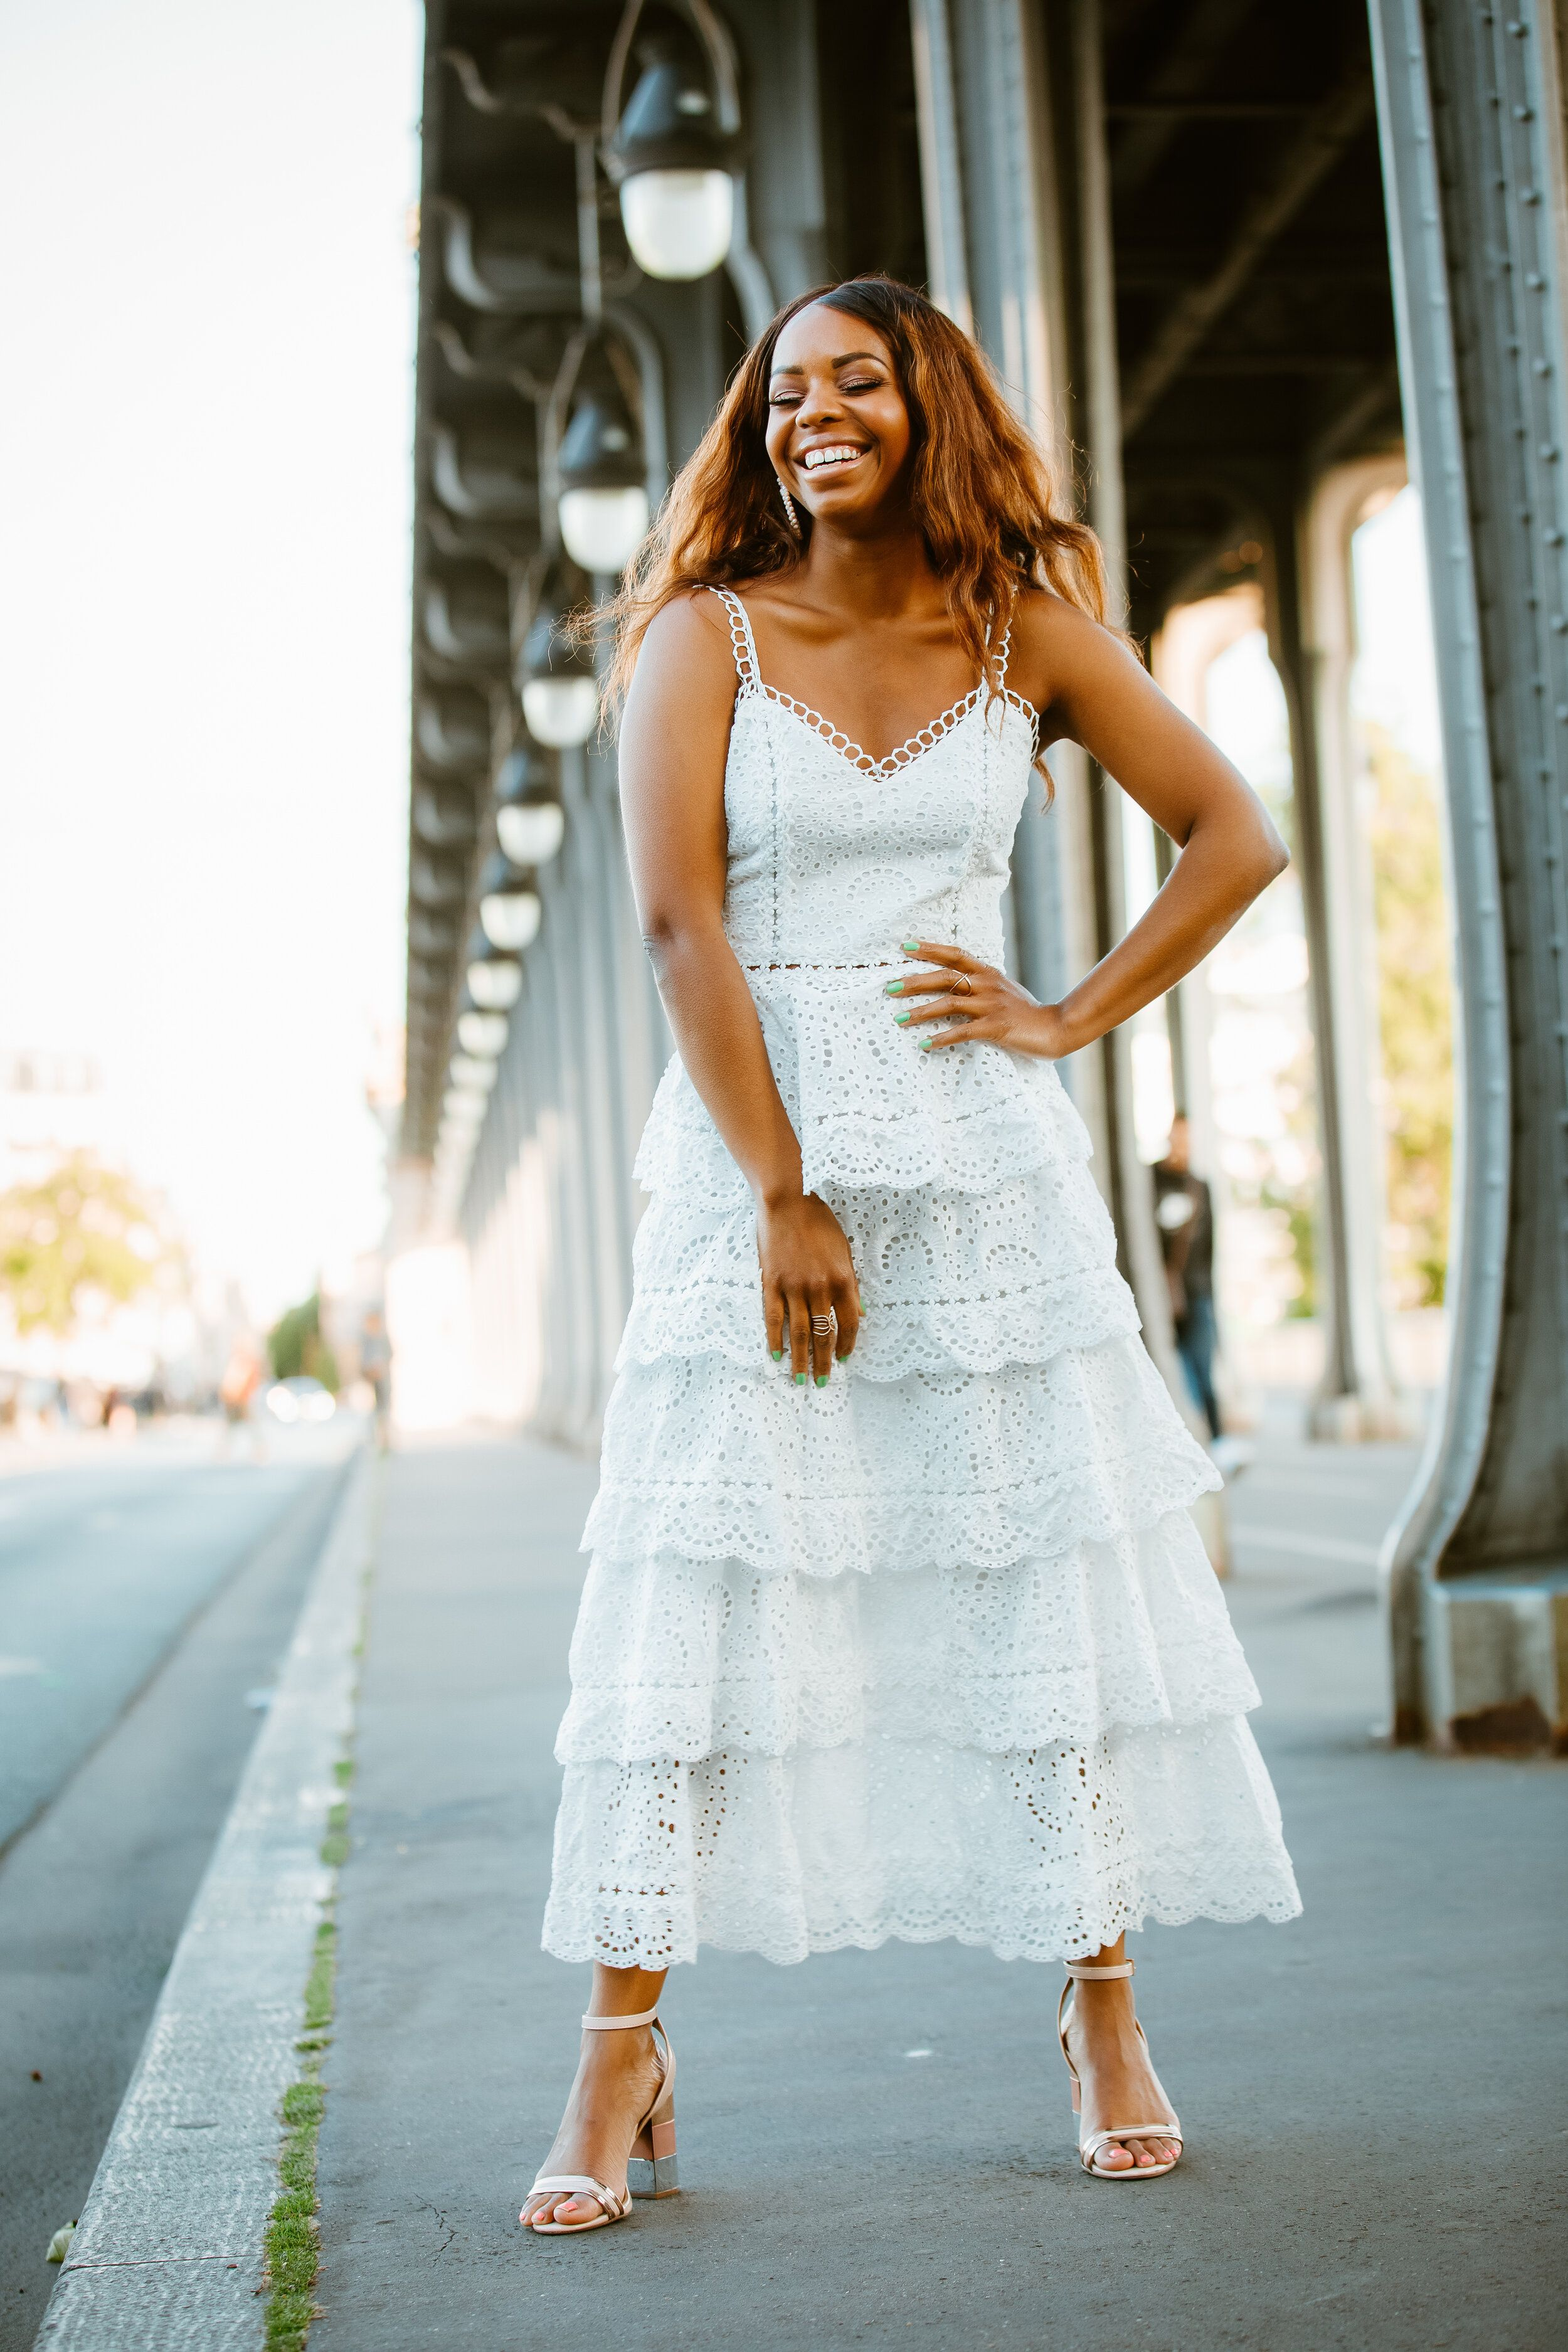 The Most Stylish And Affordable Outfits For Every Bridal Shower Malikah Kelly Bridal Shower Outfit Bridal Shower Attire Bridal Shower Dress [ 3750 x 2500 Pixel ]